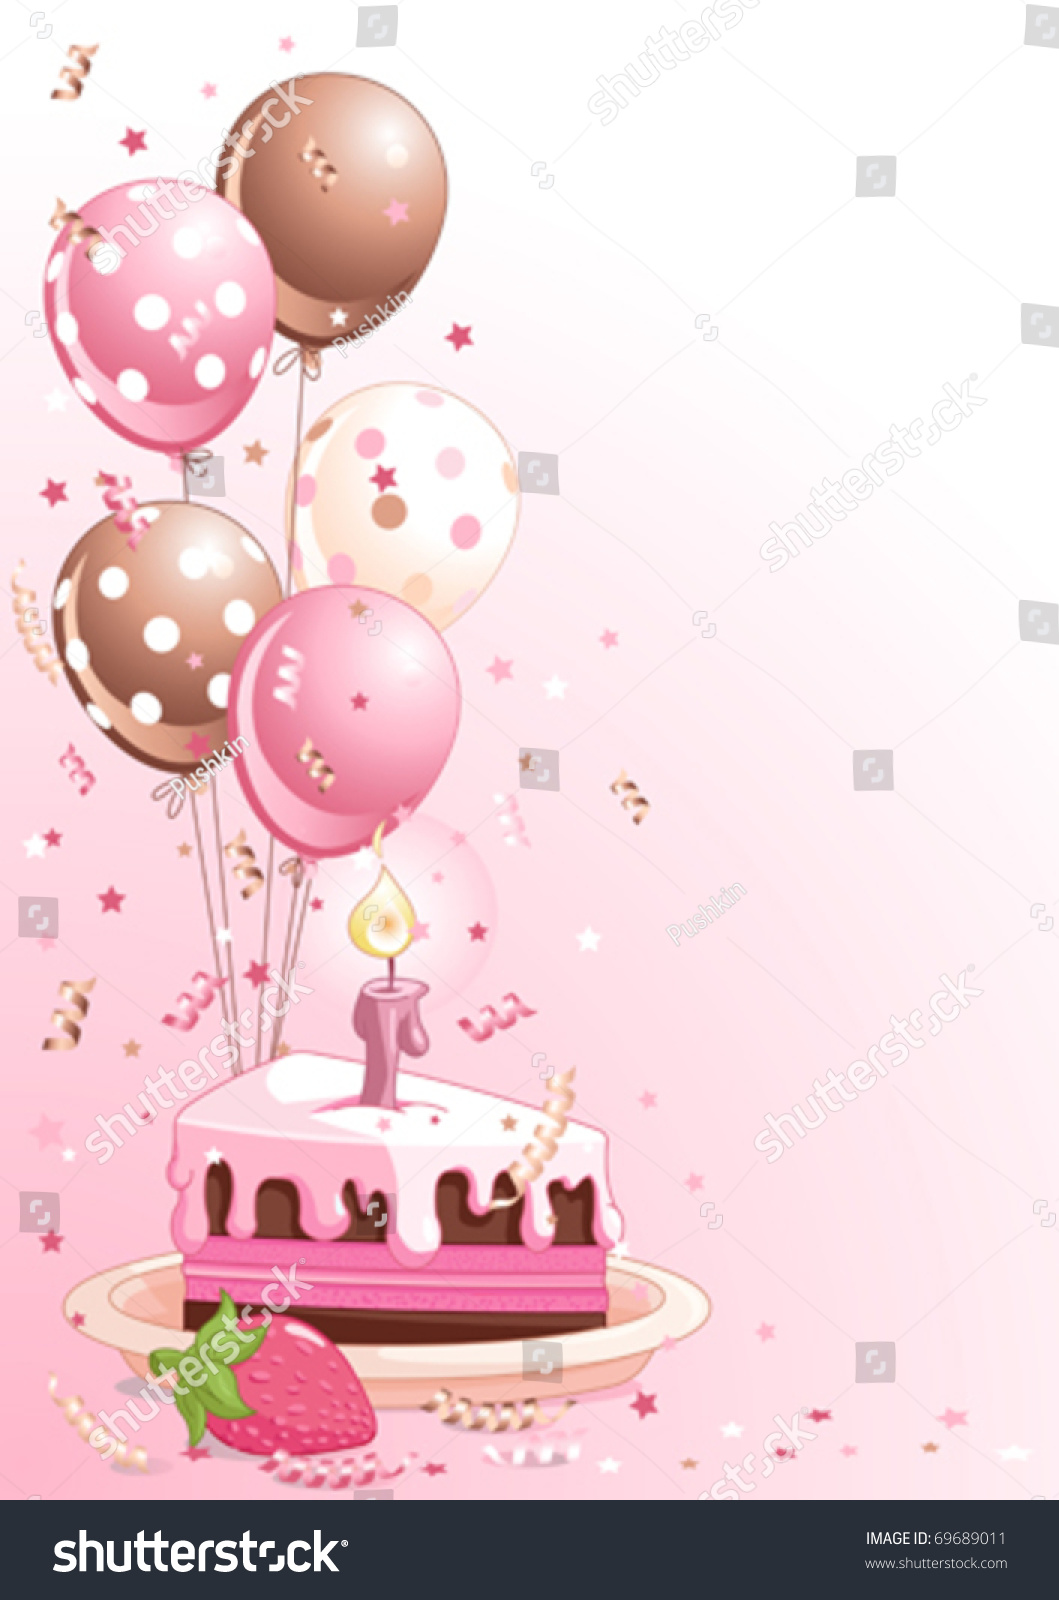 Amazing Clipart Pink Lustration Slice Birthday Cake Stock Vector Royalty Funny Birthday Cards Online Bapapcheapnameinfo